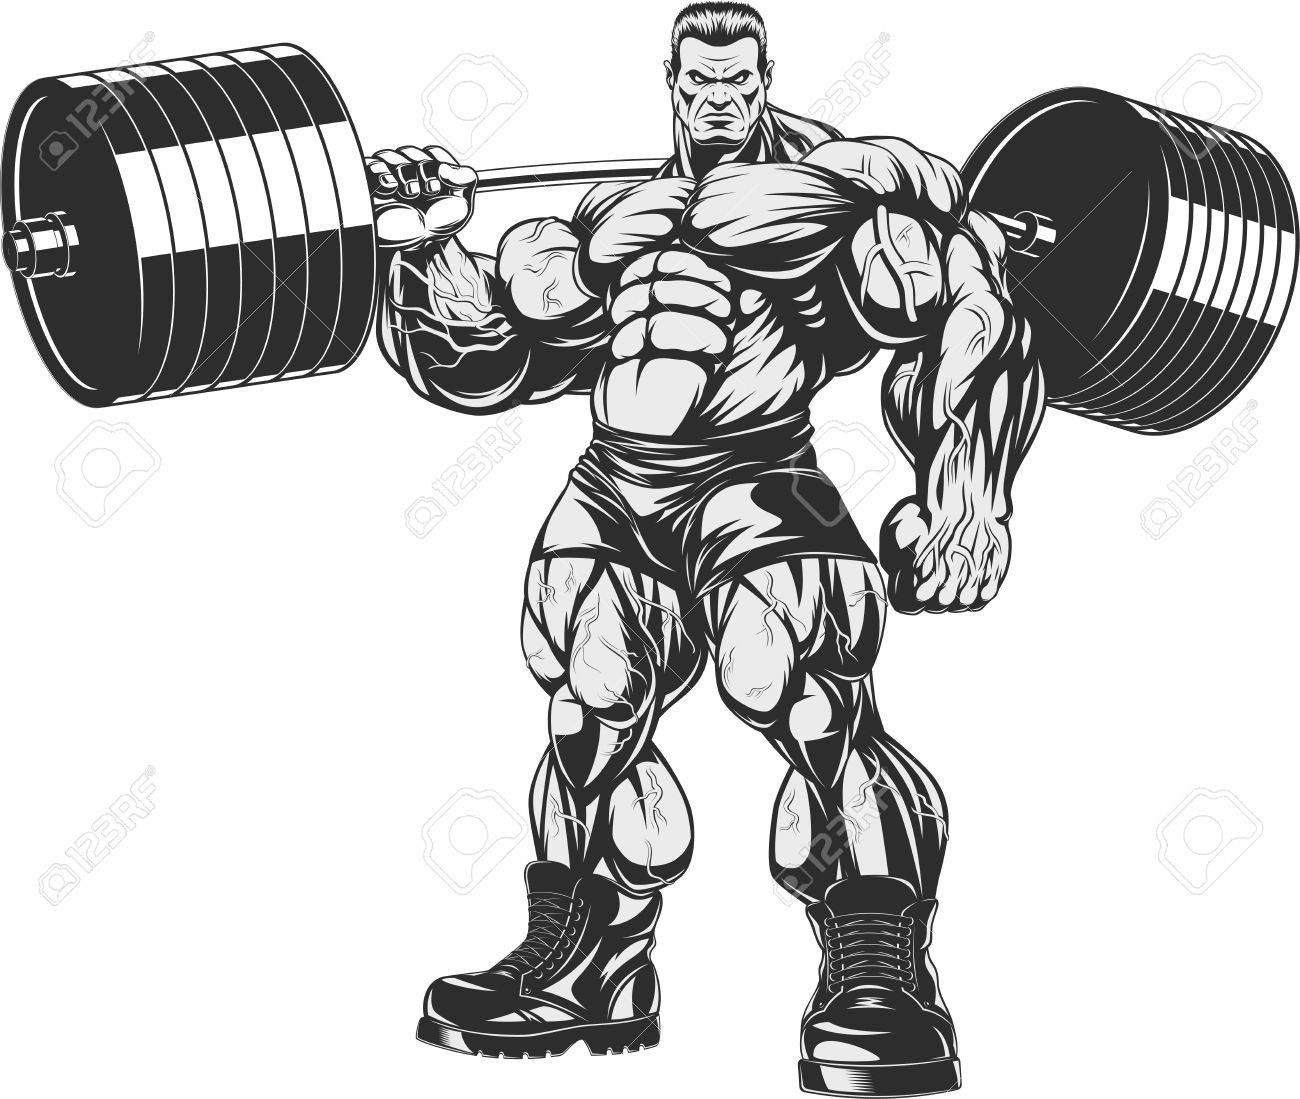 Animal lifting weight clipart black and white vector freeuse download 71381111 Vector Illustration Strict Coach Bodybuilding And Fitness ... vector freeuse download